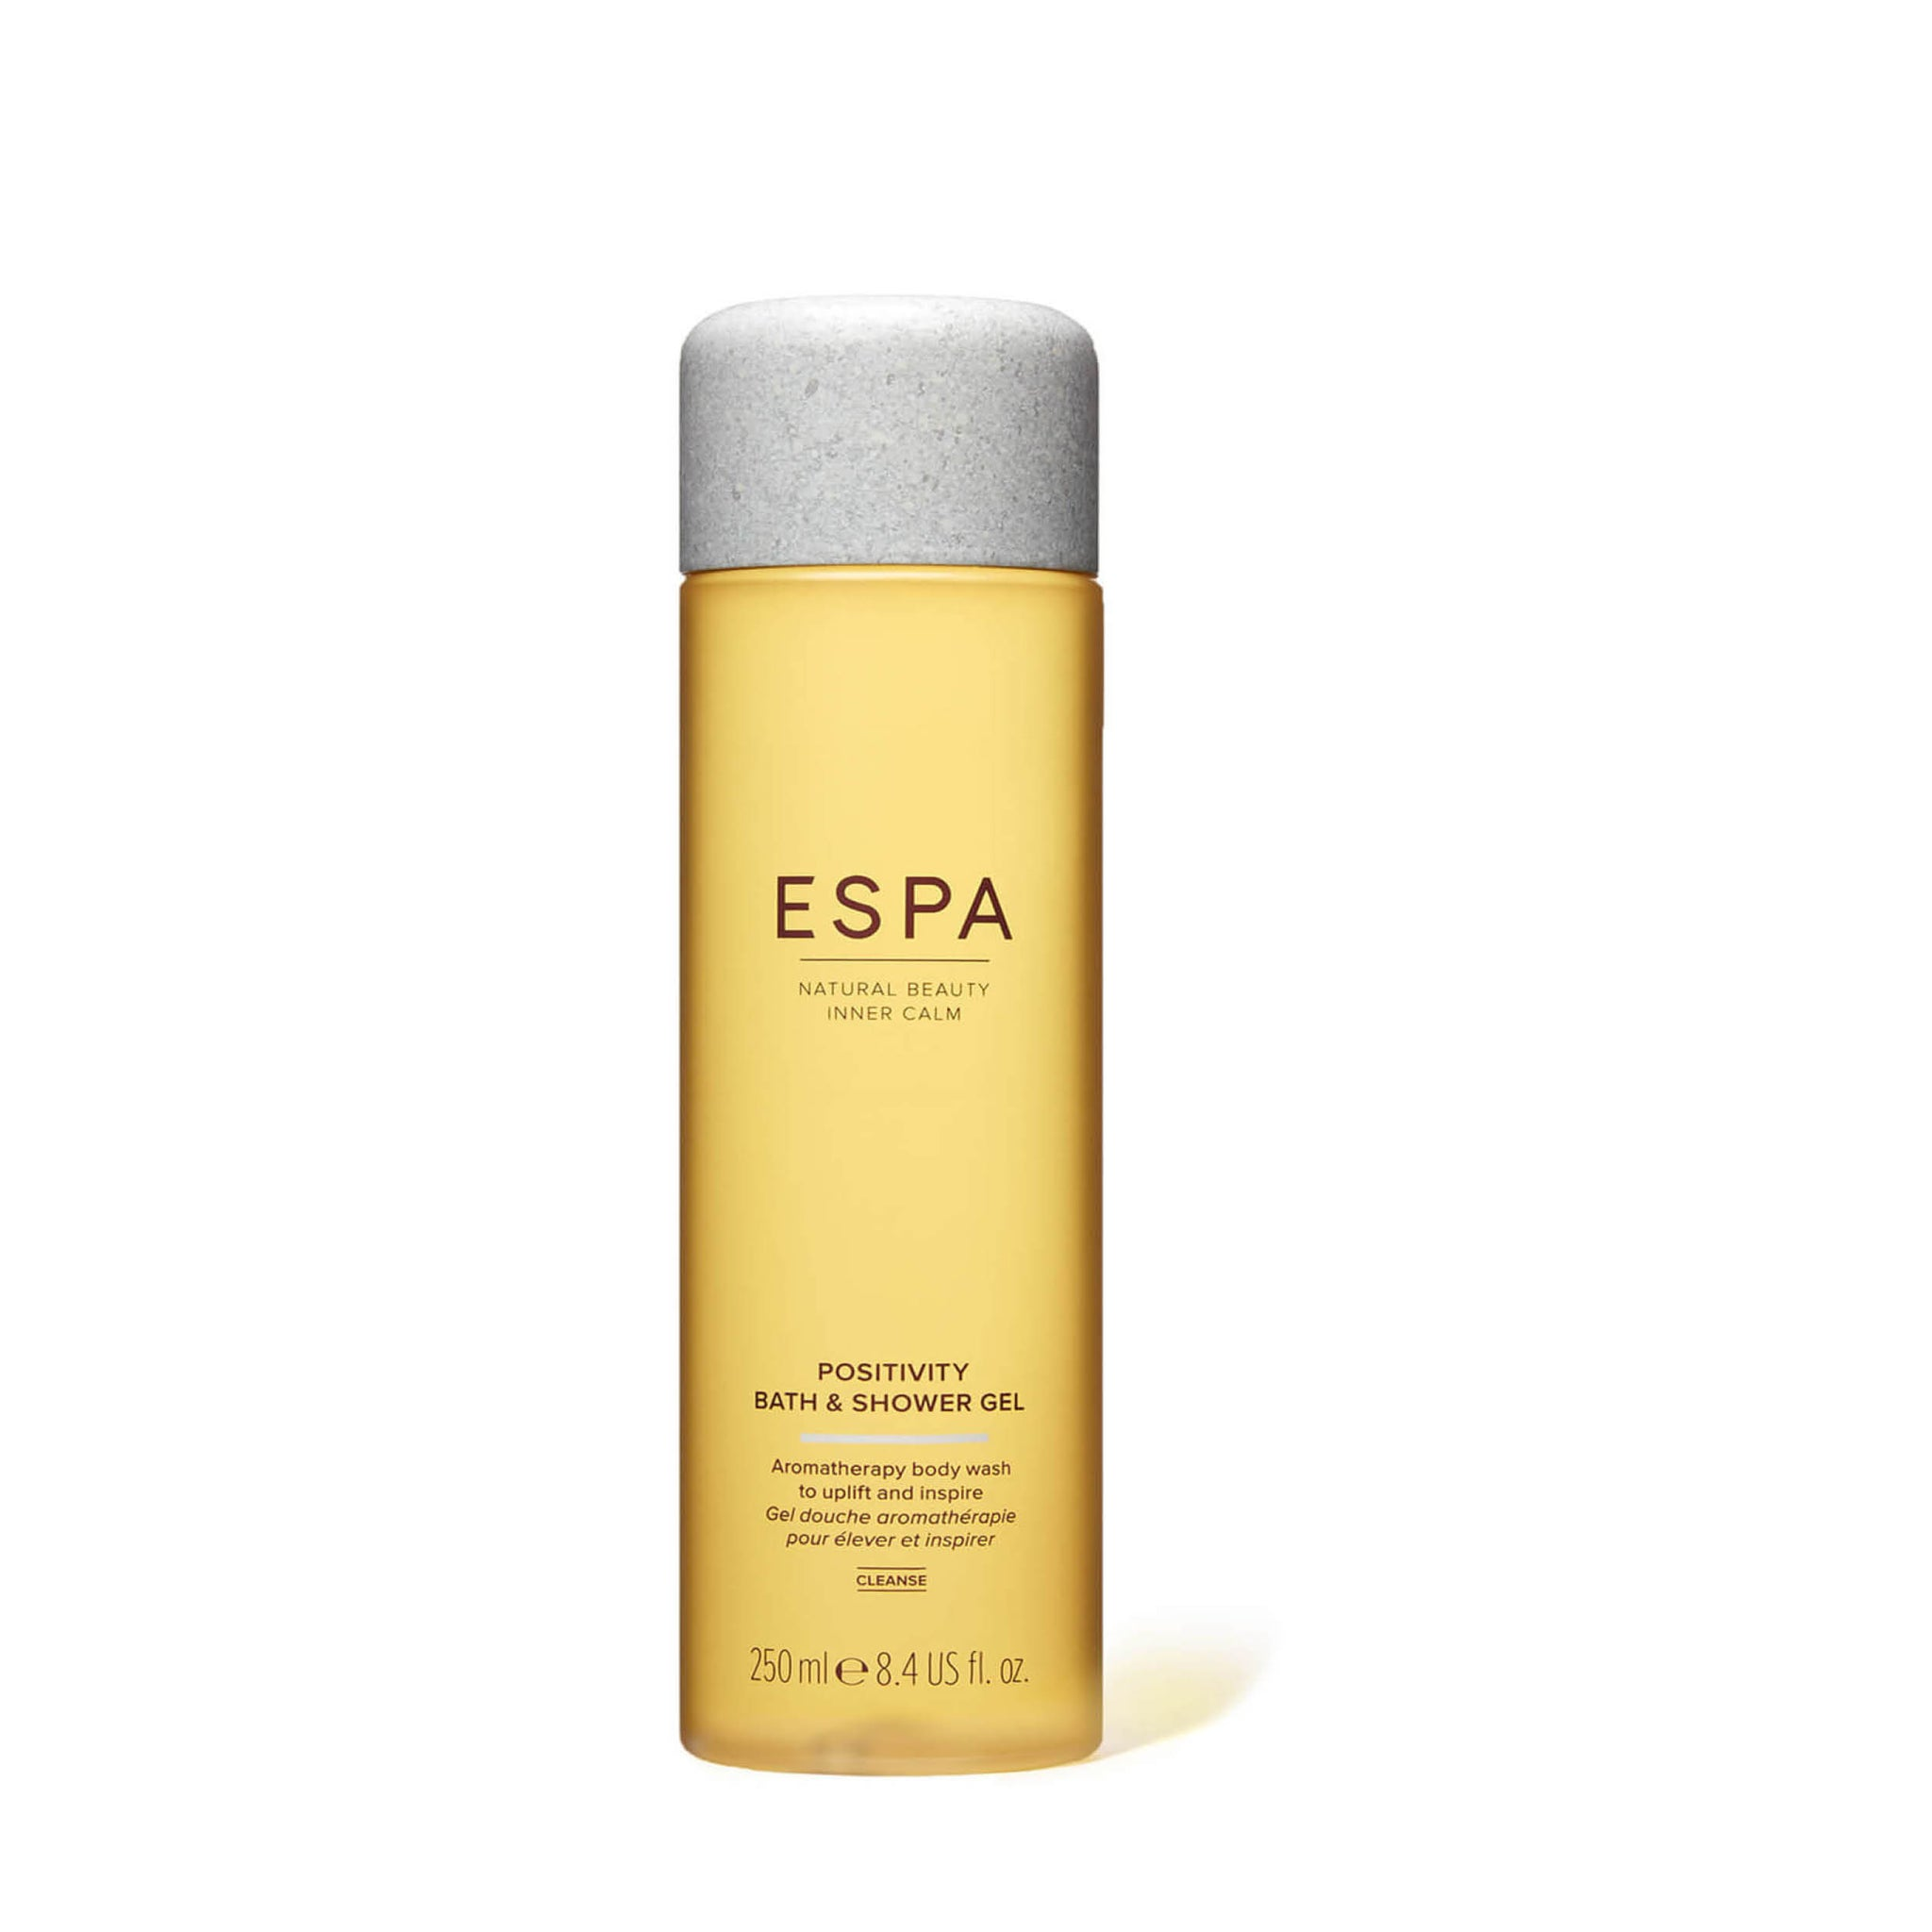 ESPA Positivity Bath & Shower Gel